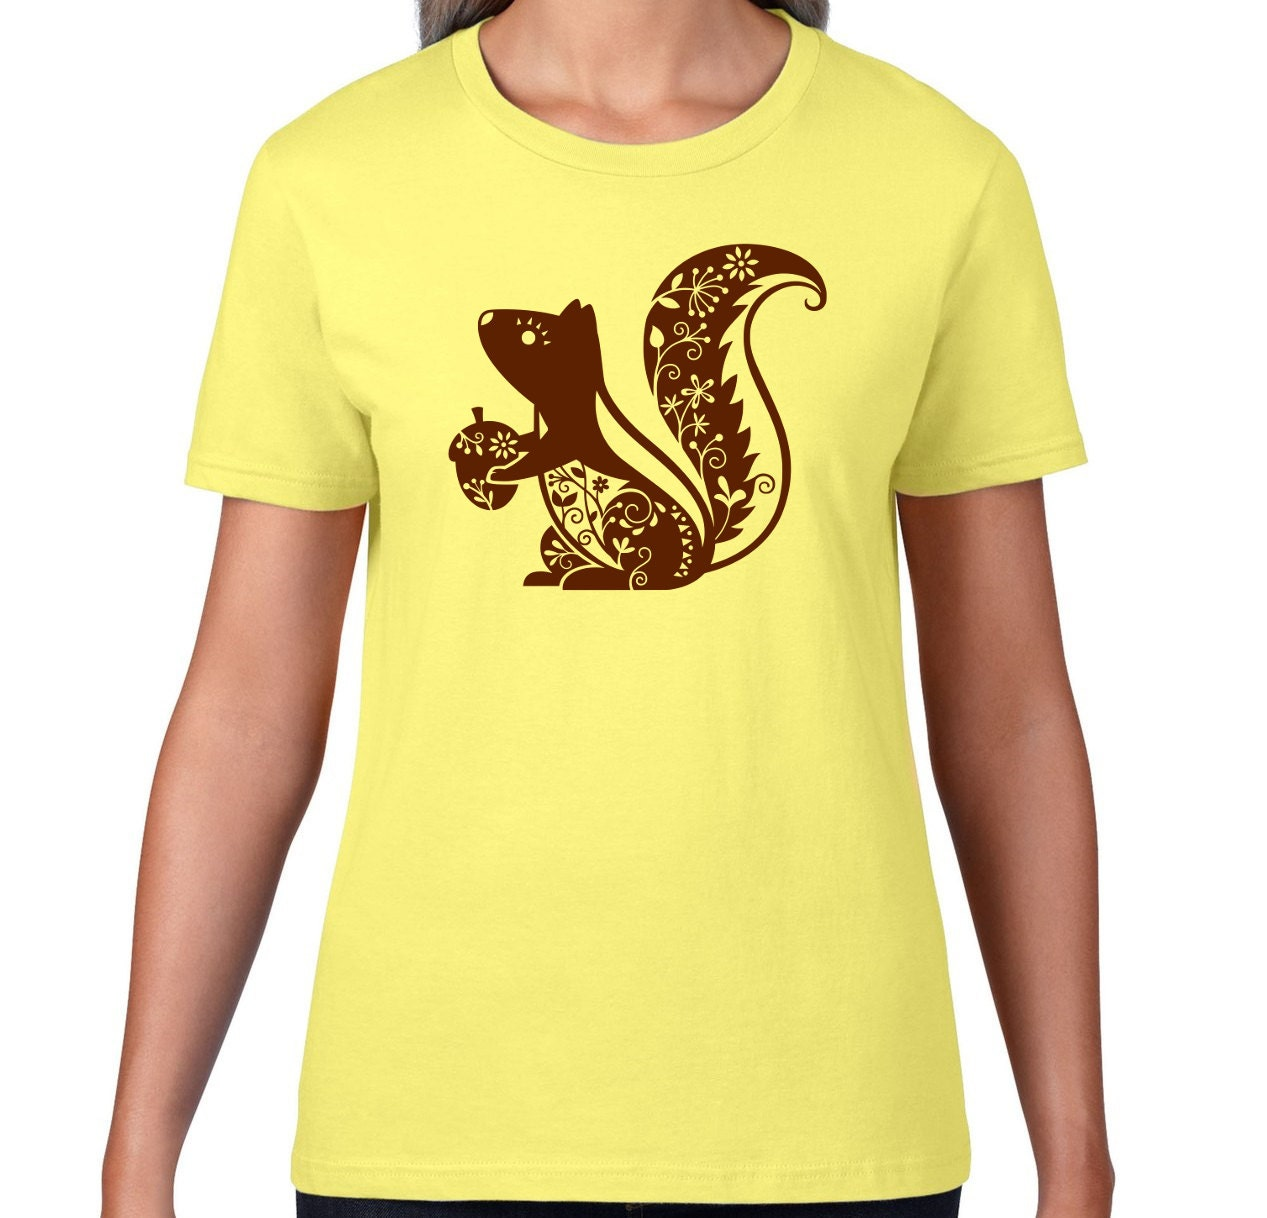 Cute squirrel tshirt cute animal t shirt whimsical squirrel for Animal tee shirts online